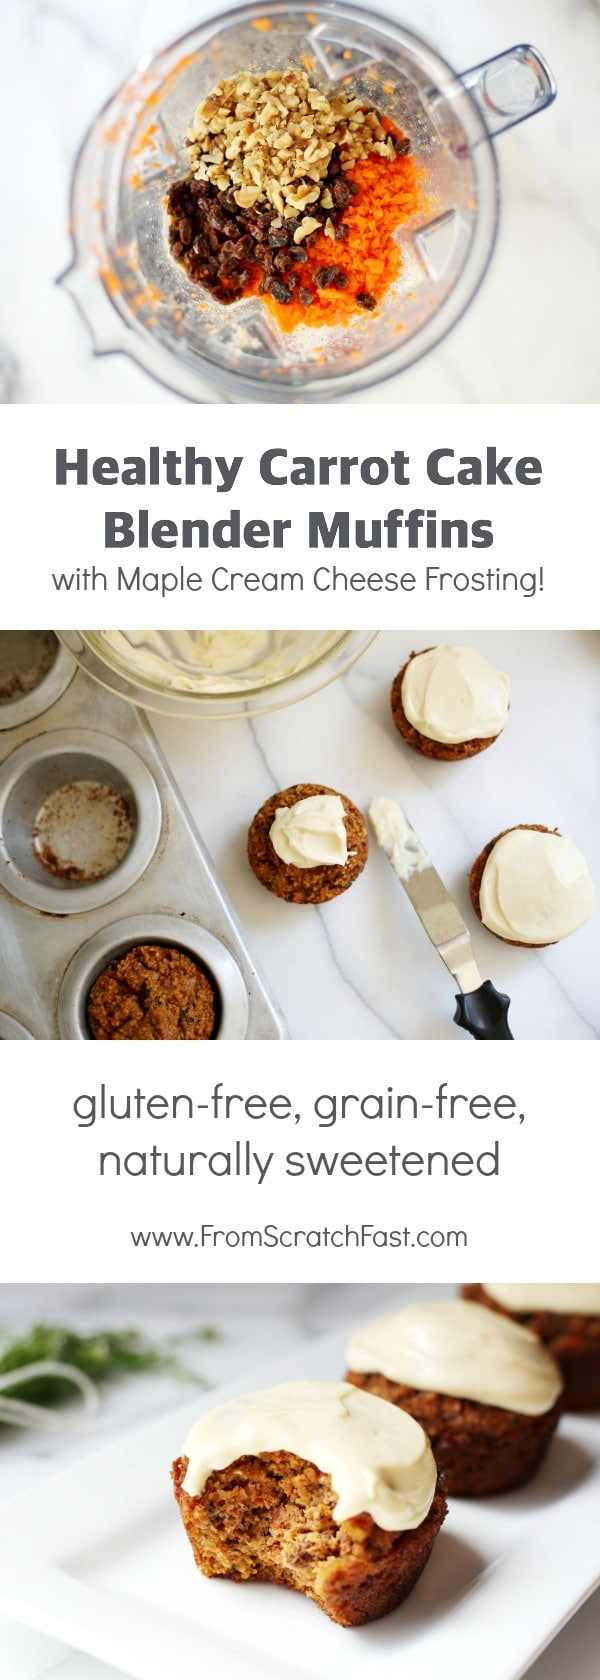 Naturally sweetened carrot cake muffins that are gluten-free & grain-free but taste just like carrot cake!